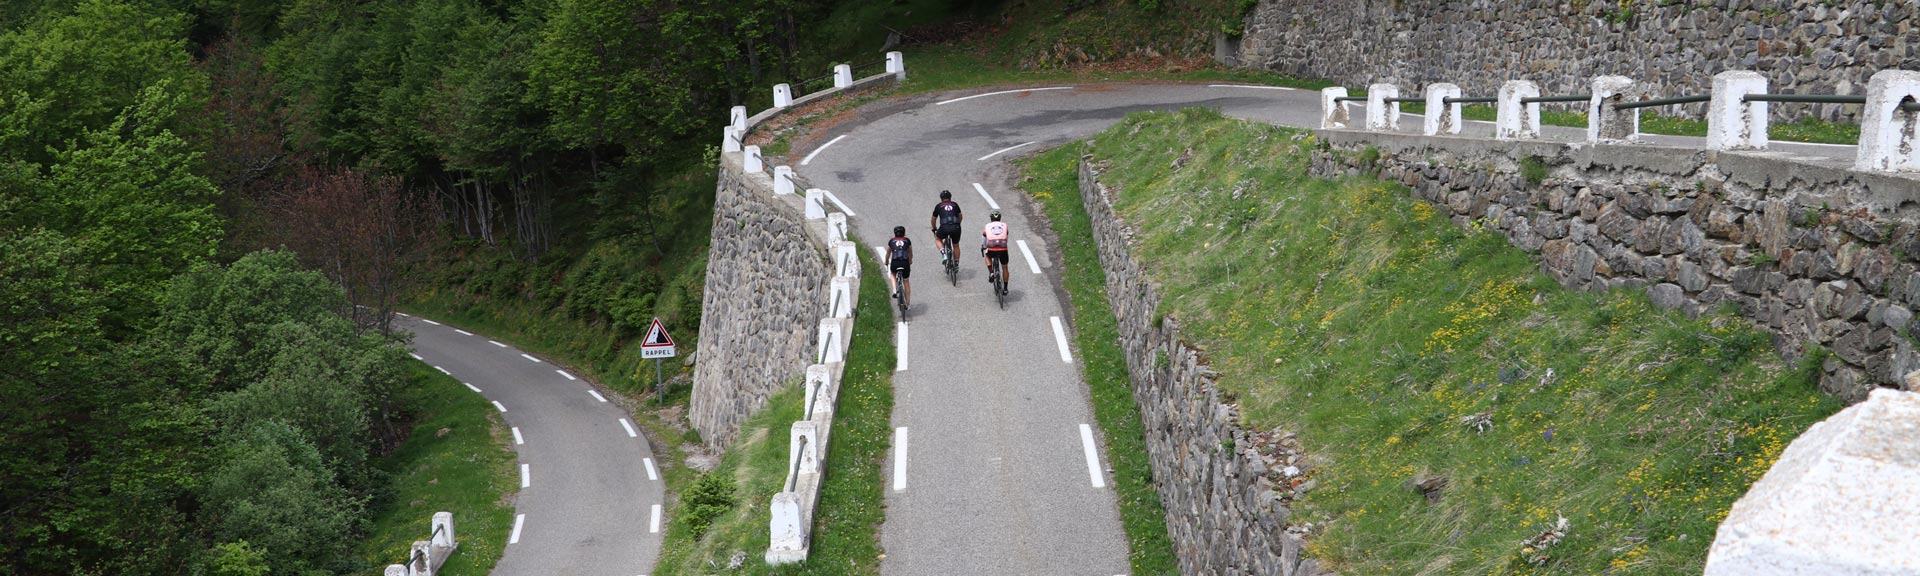 Bikecat Custom Cycling Tours - Best of Girona: From the Pyrenees to Costa Brava